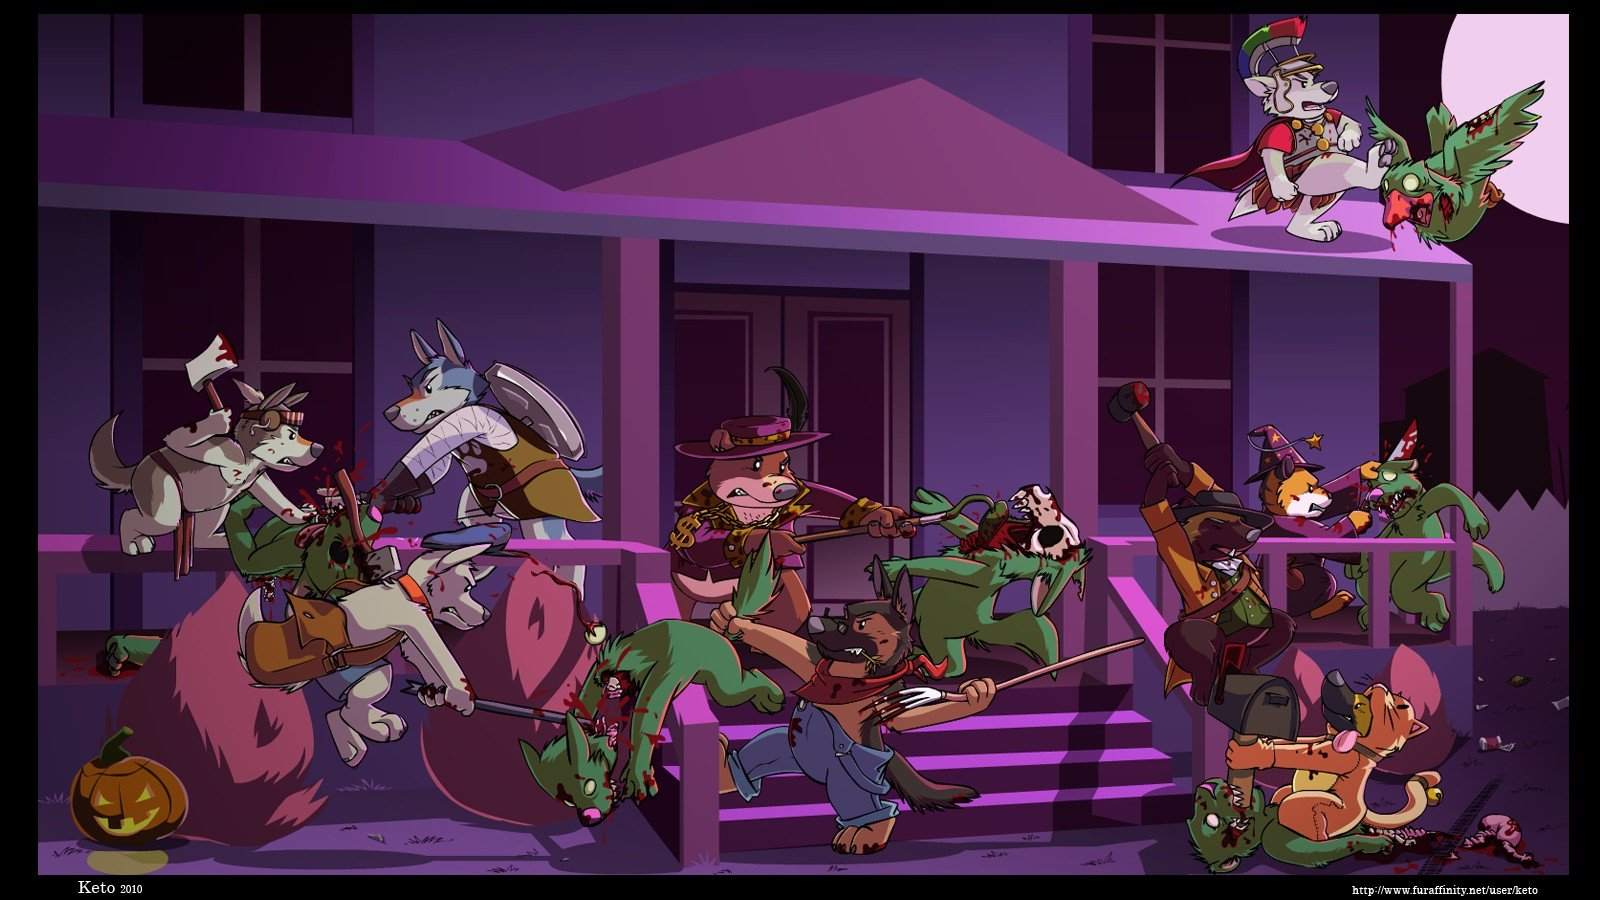 Zombies Wallpaper 1920x1080 Anthro, Furry, Zombies...